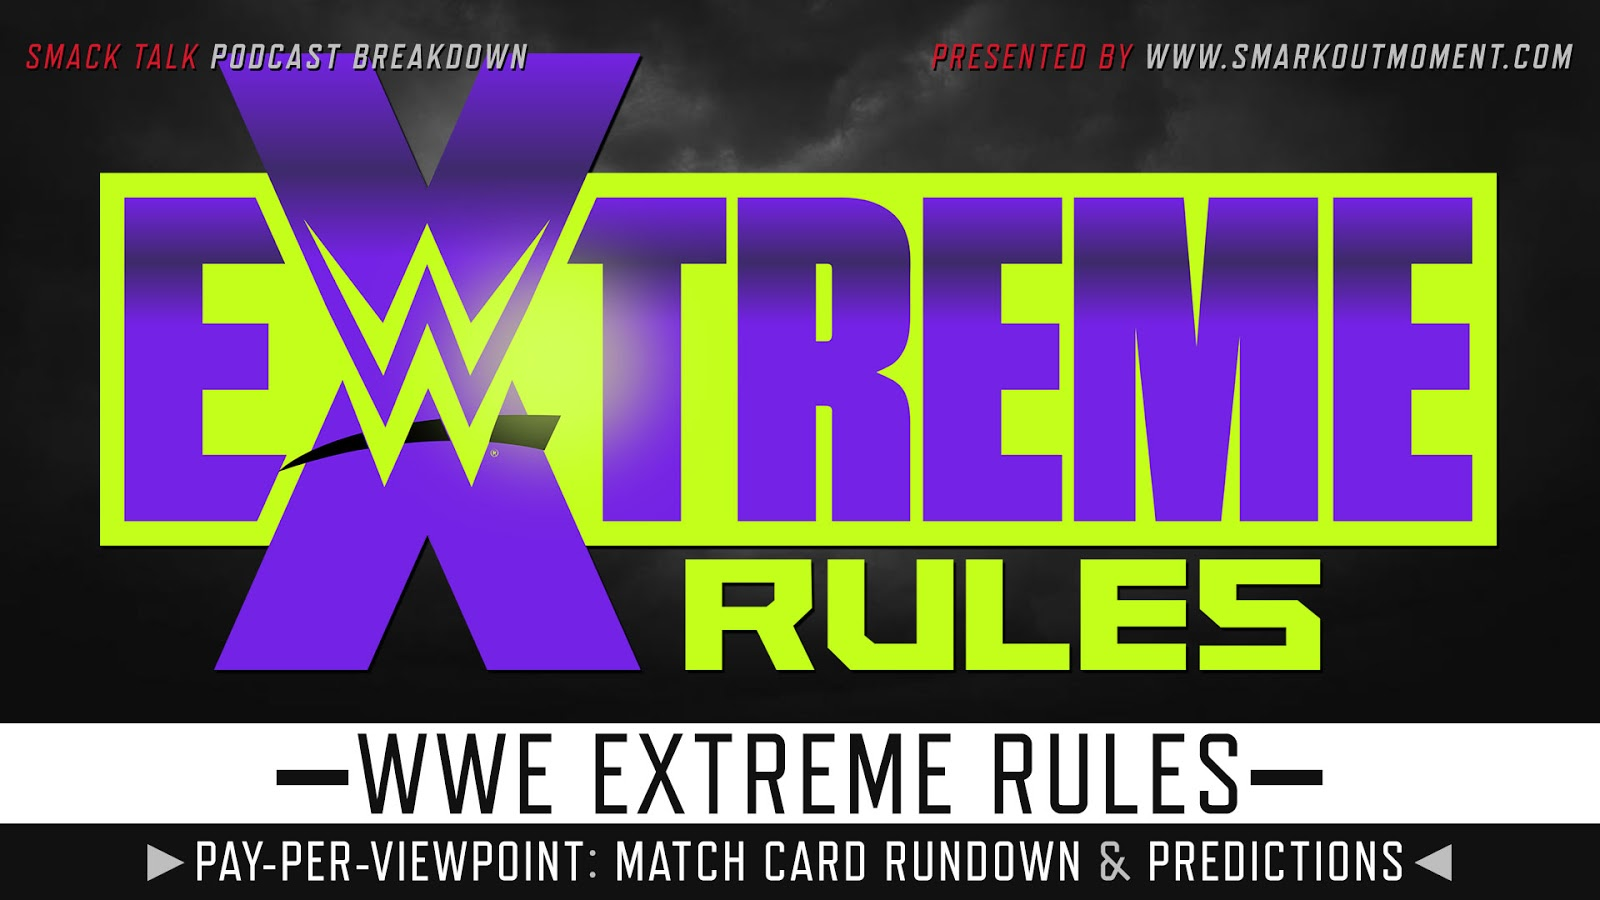 WWE Extreme Rules 2020 spoilers podcast